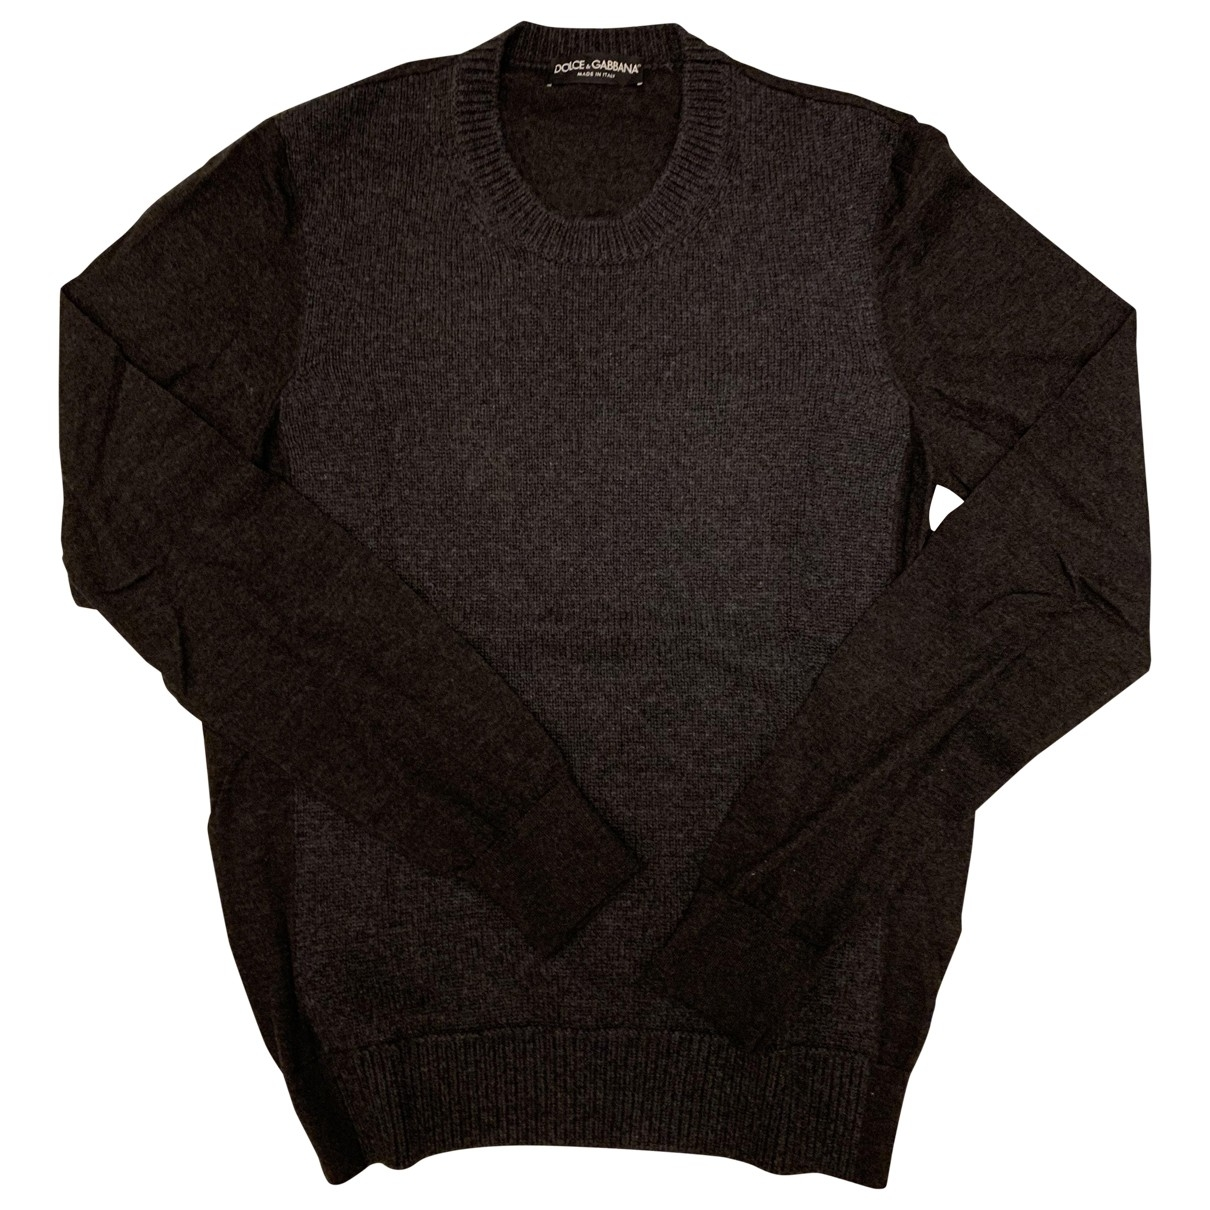 Dolce & Gabbana \N Anthracite Cashmere Knitwear & Sweatshirts for Men 48 IT